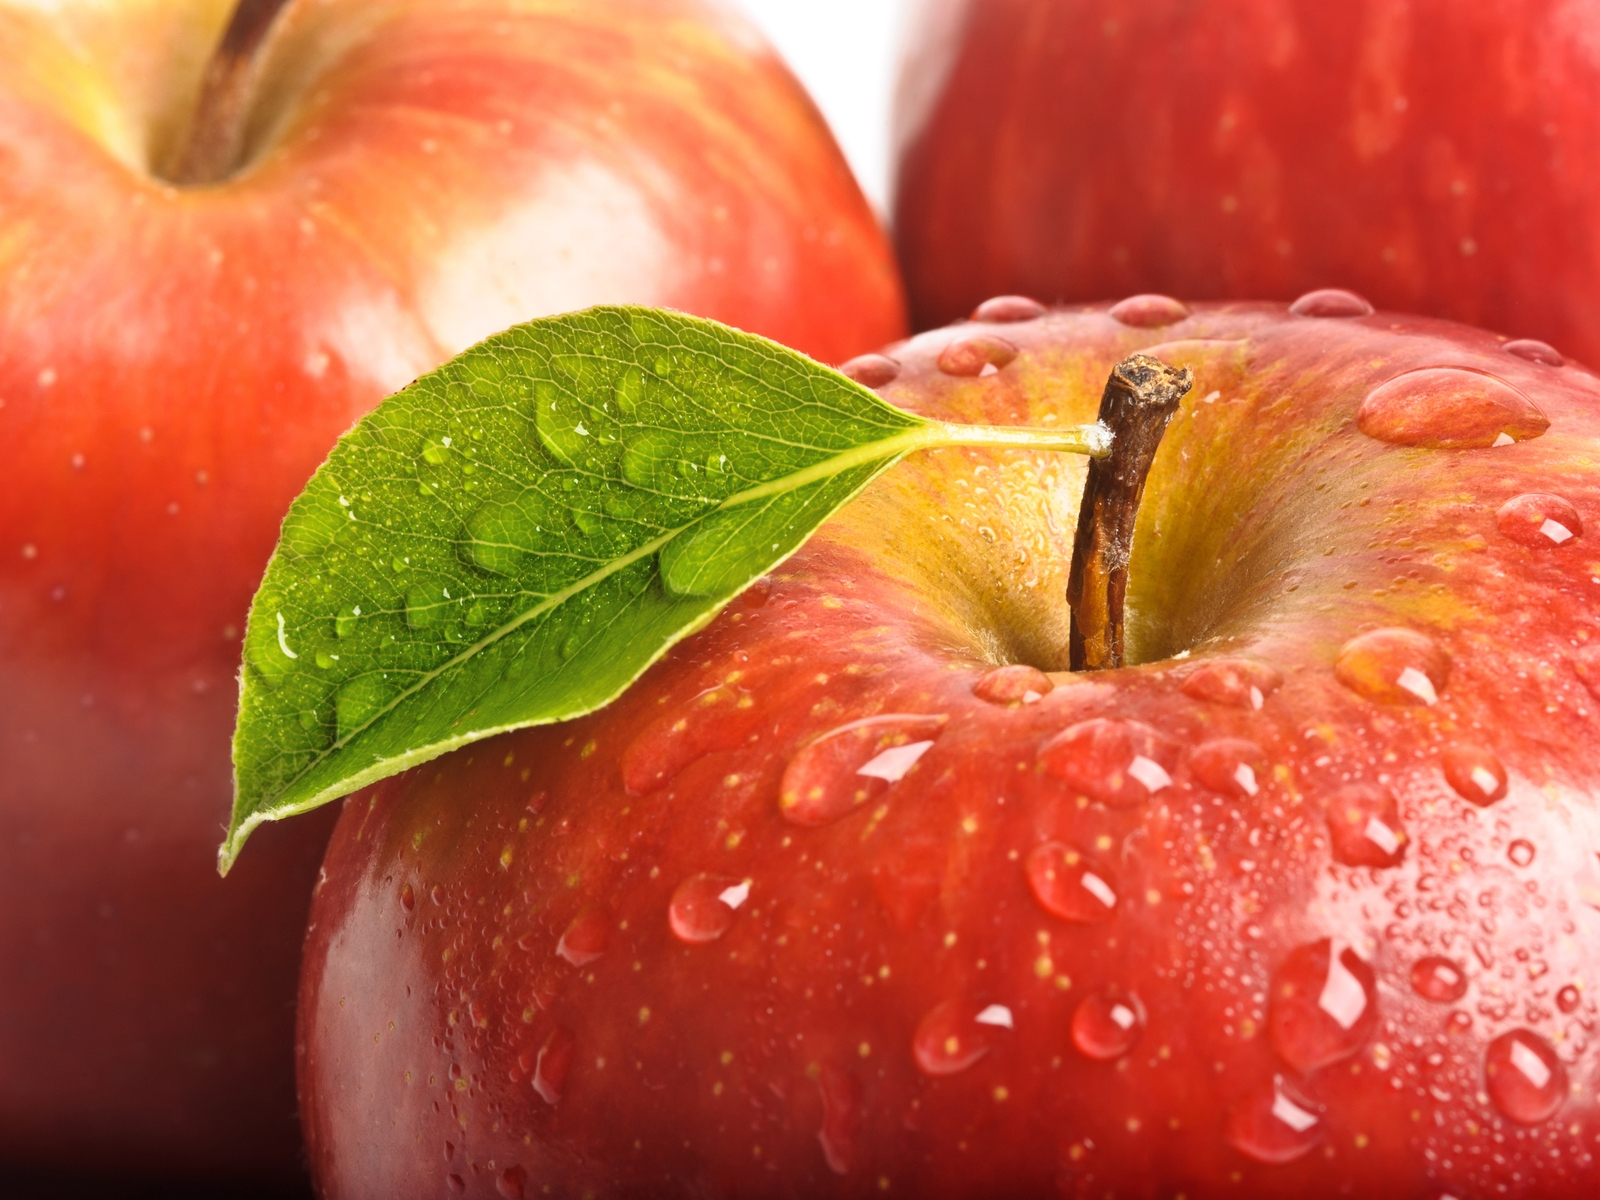 red apples water drops close up hd wallpaper | hd nature wallpapers